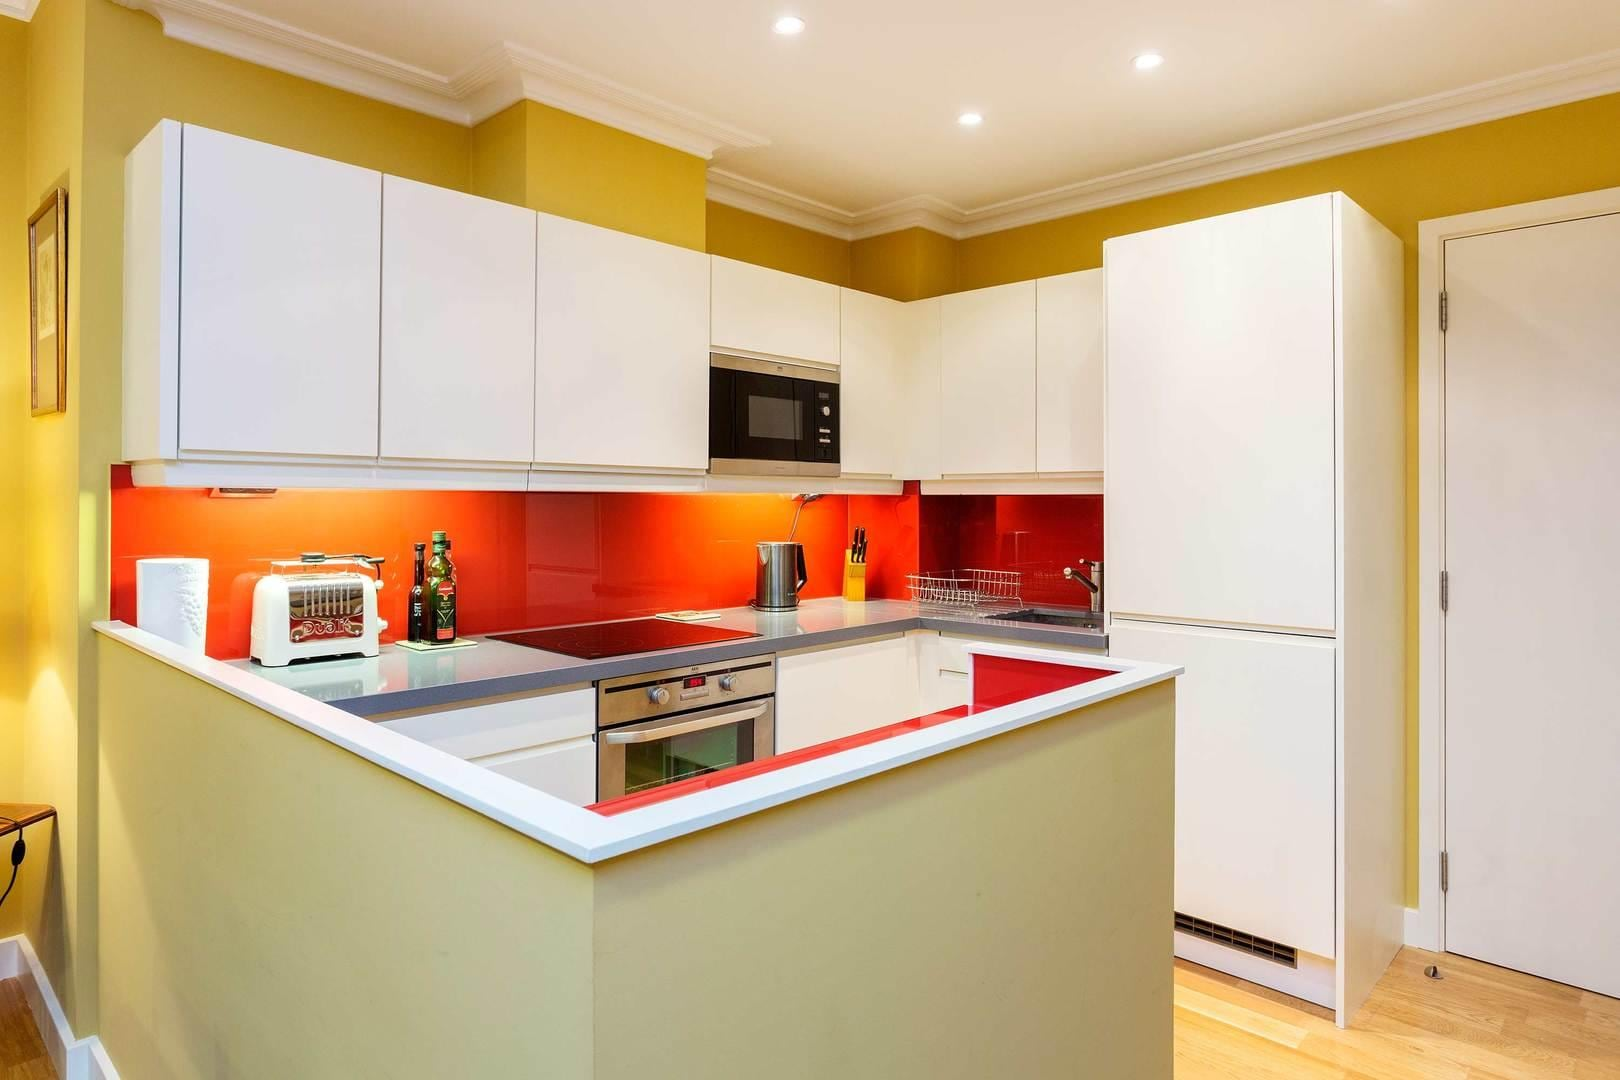 Property Image 2 - Colourful Elegant Apartment in Central London Location